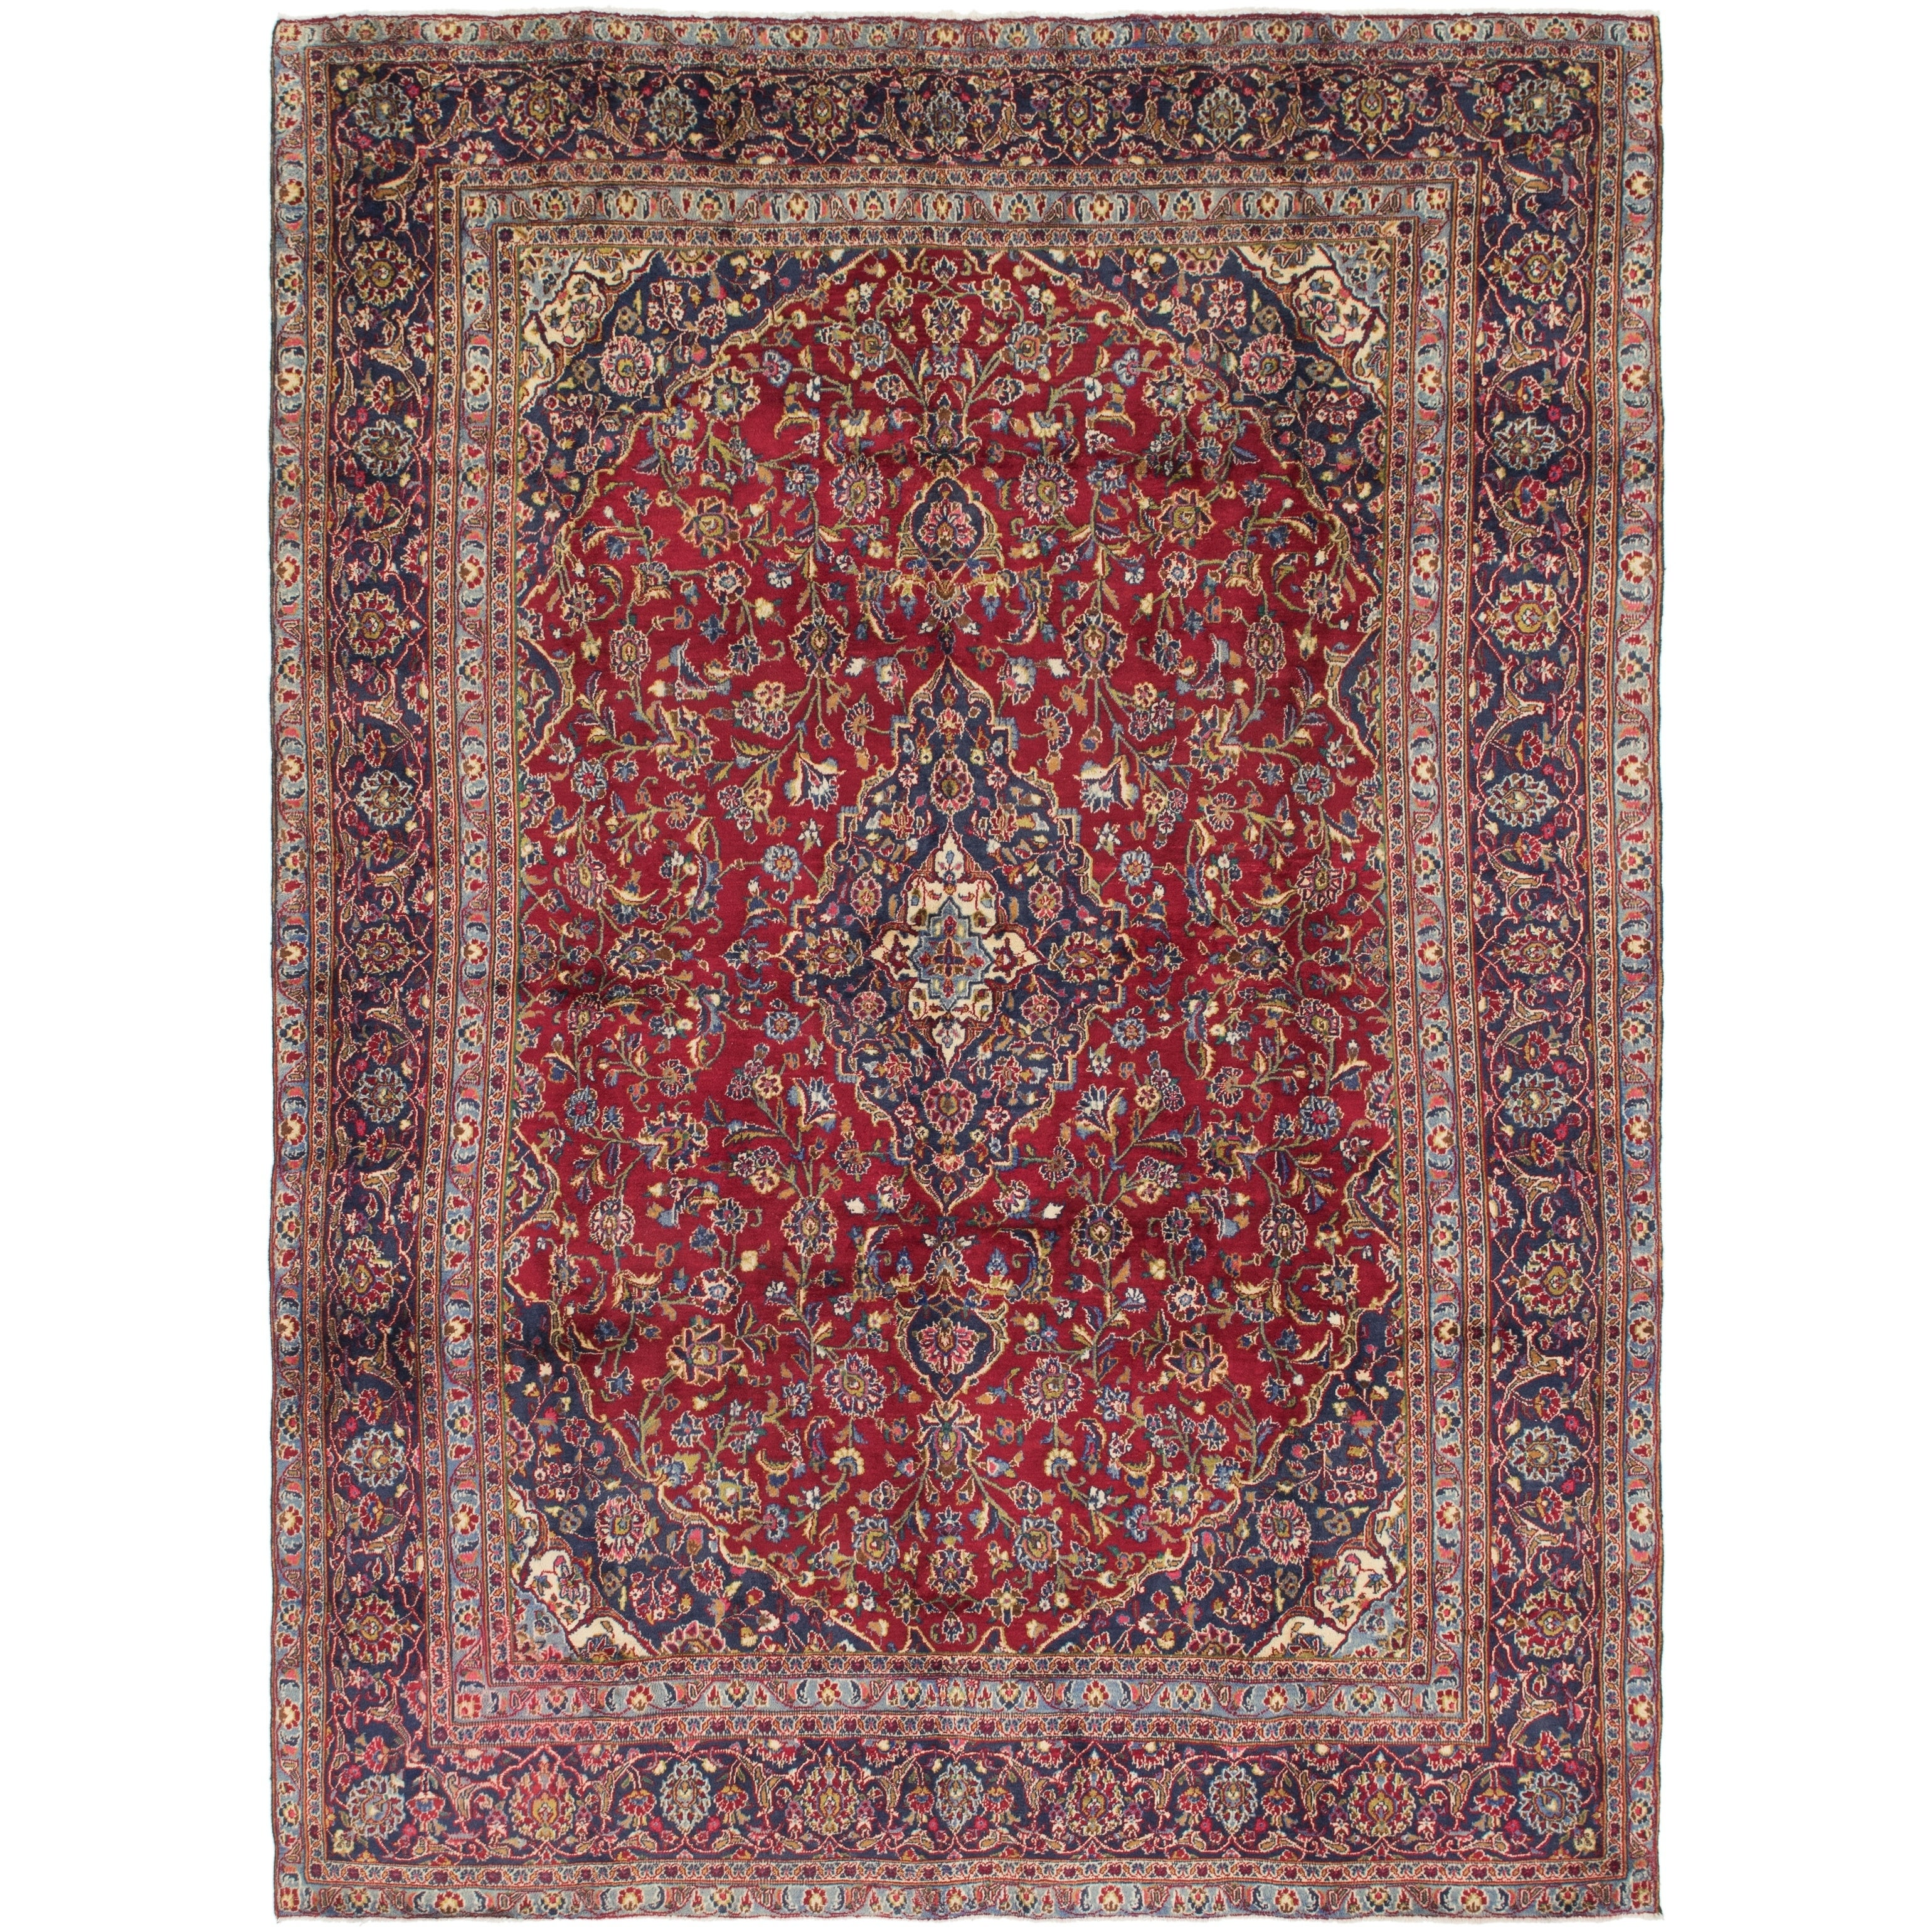 Hand Knotted Kashan Semi Antique Wool Area Rug - 8 10 x 12 4 (Red - 8 10 x 12 4)